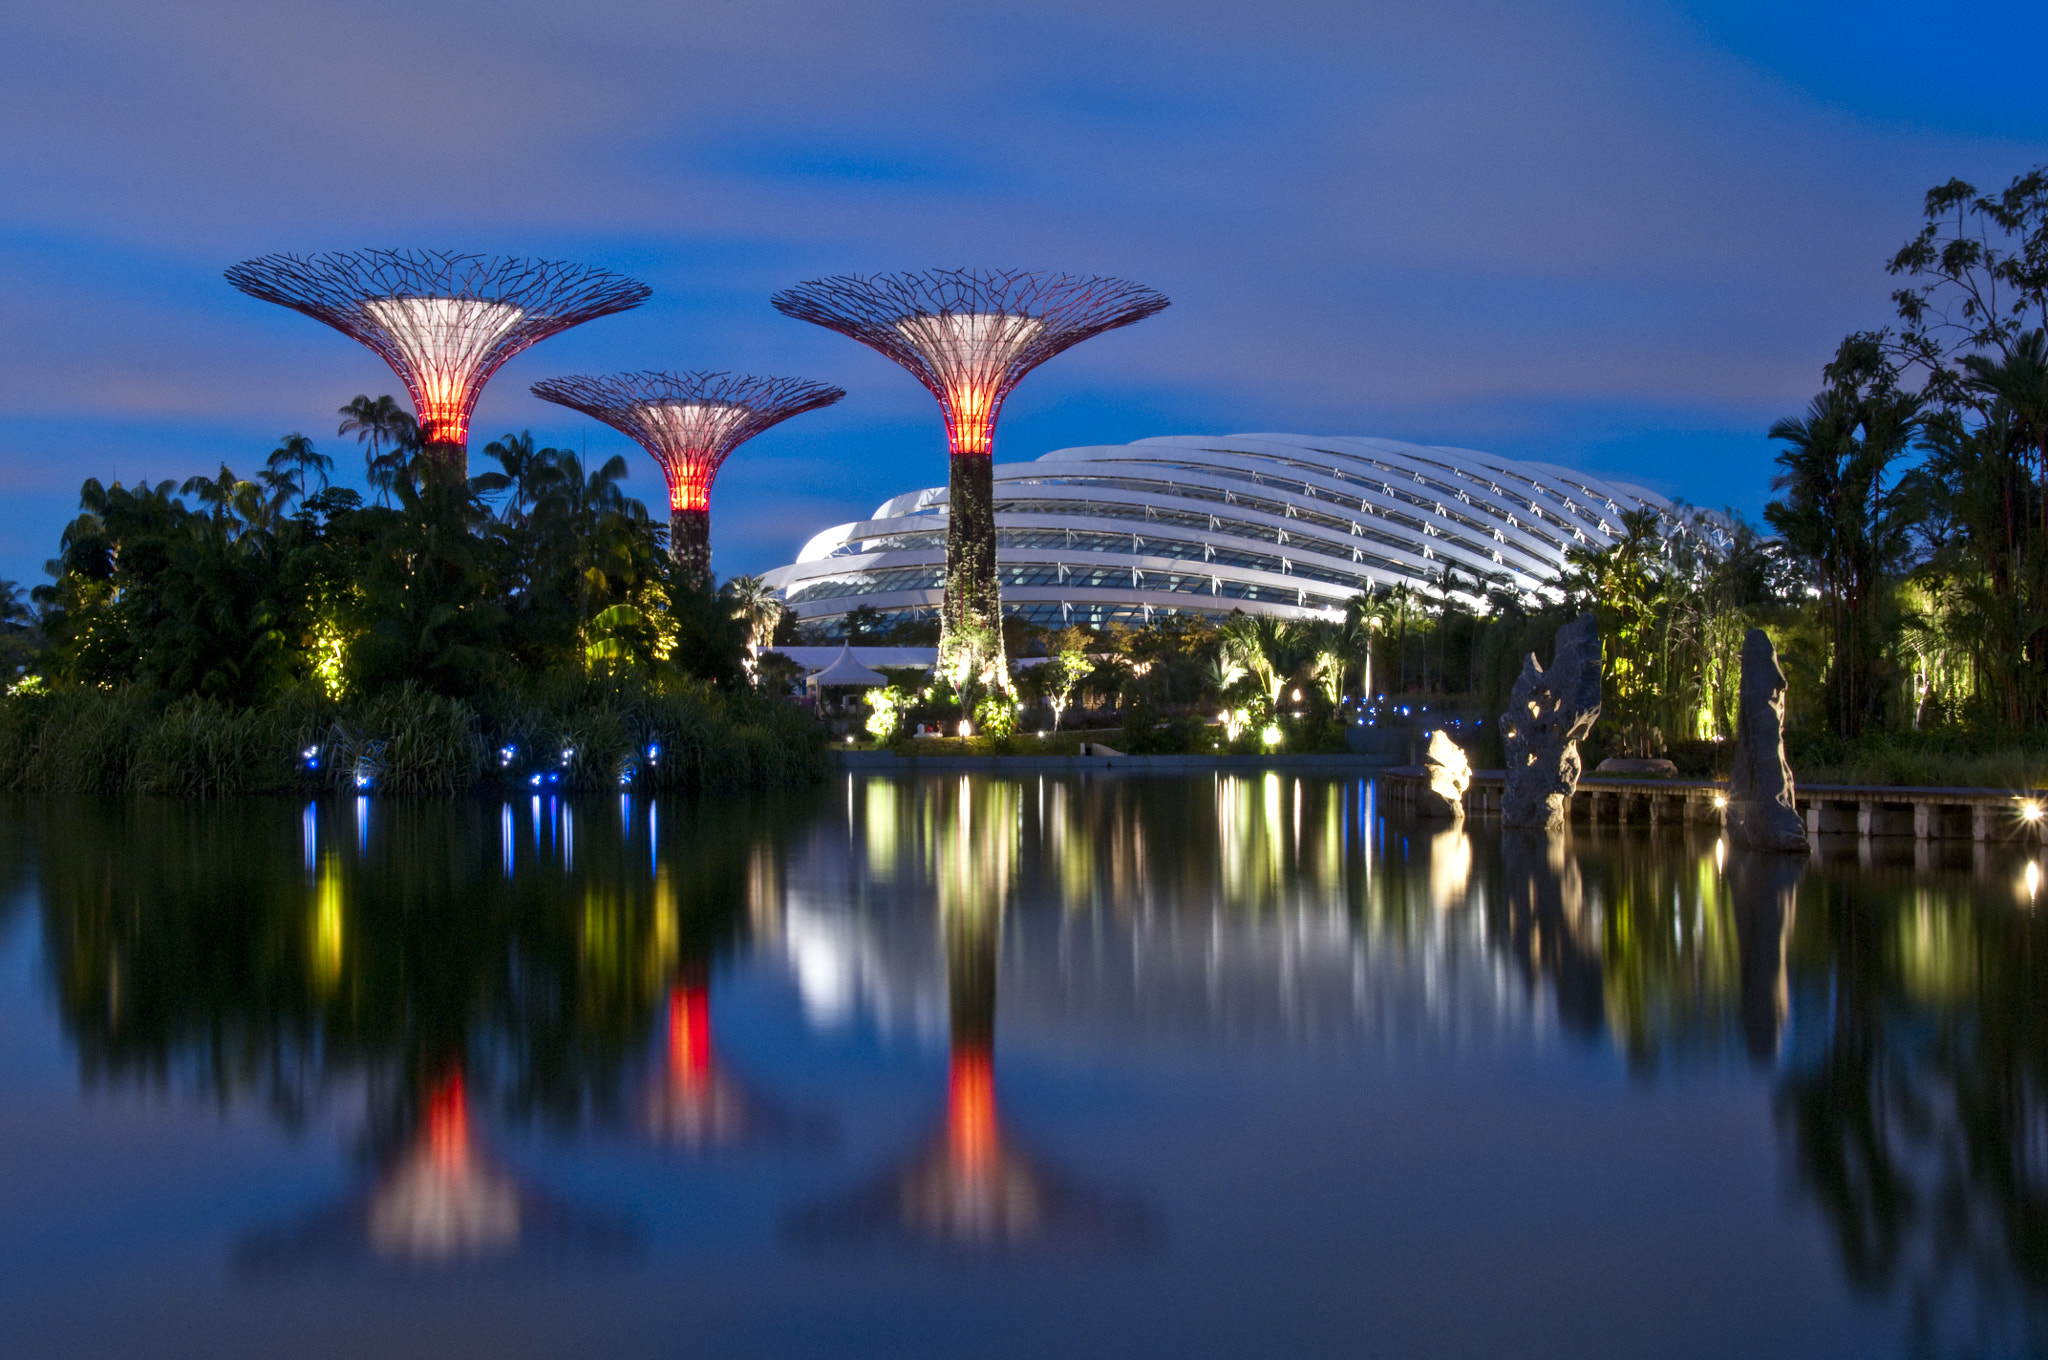 Photograph Gardens by the Bay Singapore by Heshan  de Mel on 500px